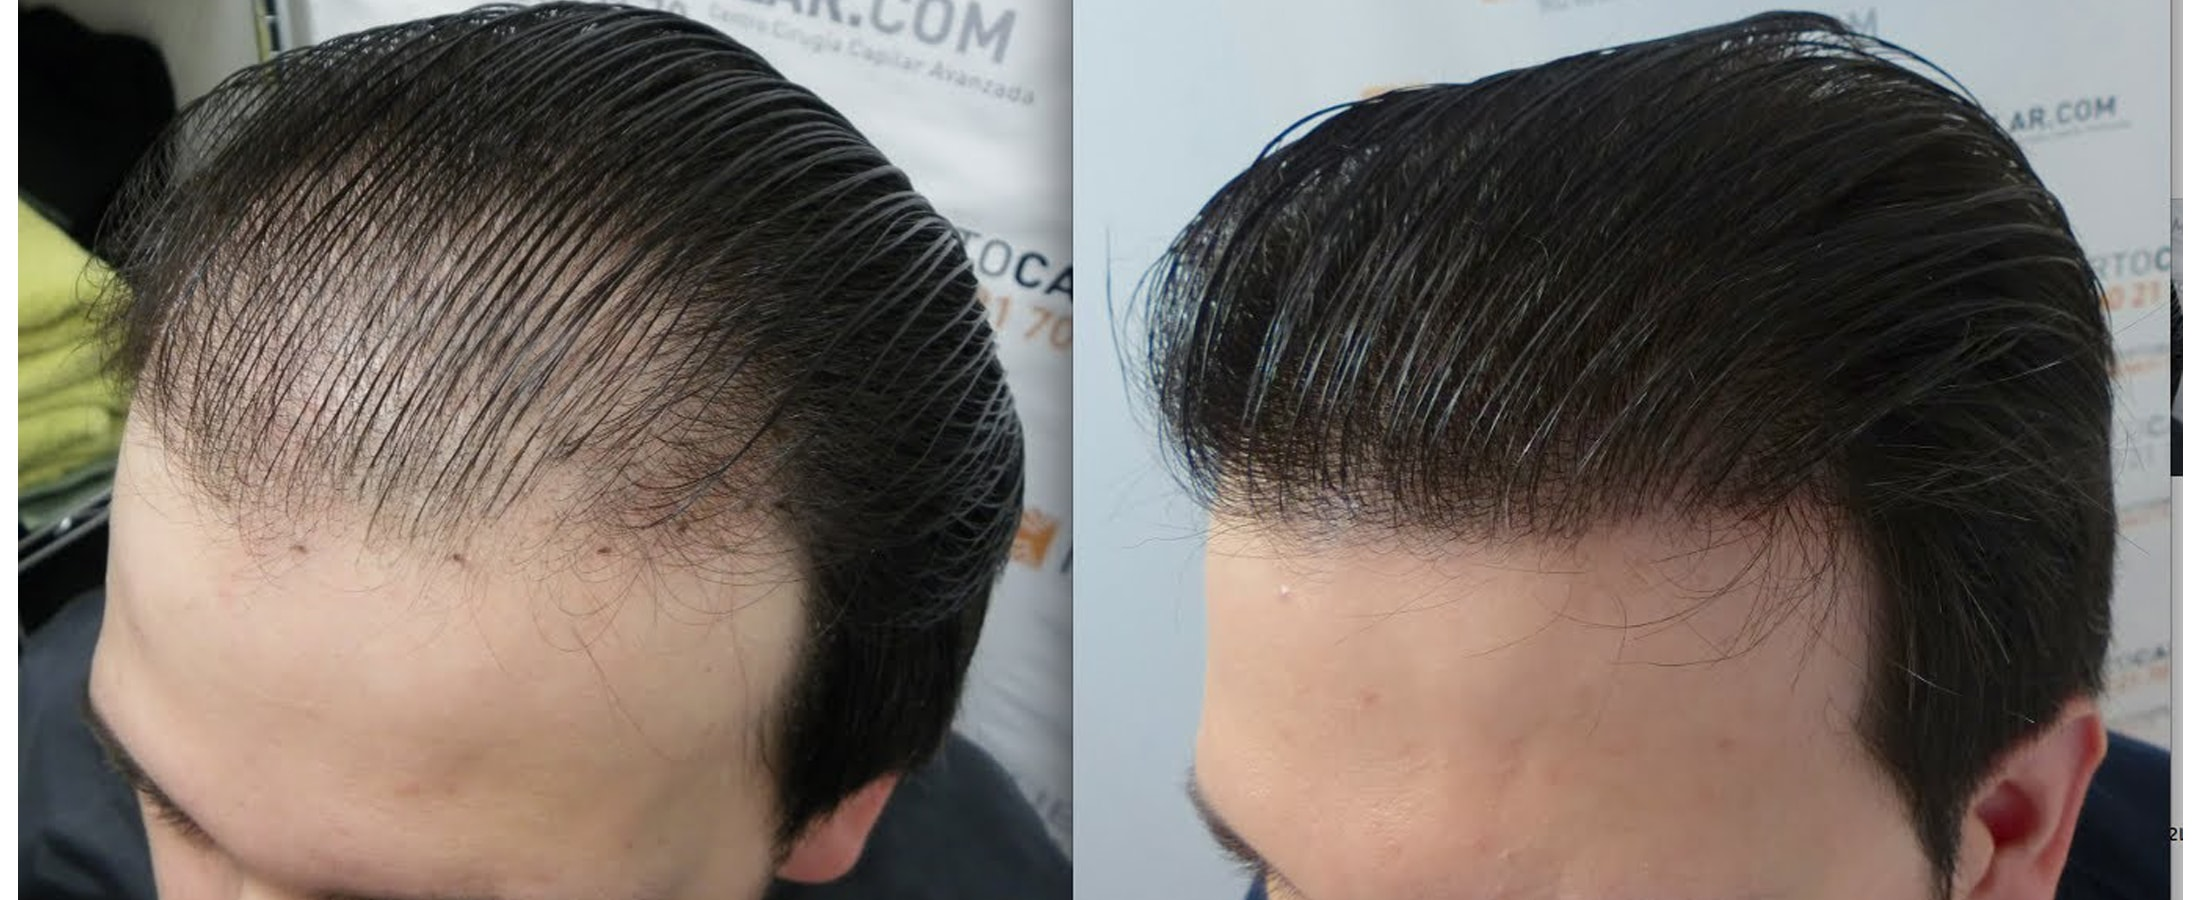 How Much Does Hair Transplant Cost Hair Transplant